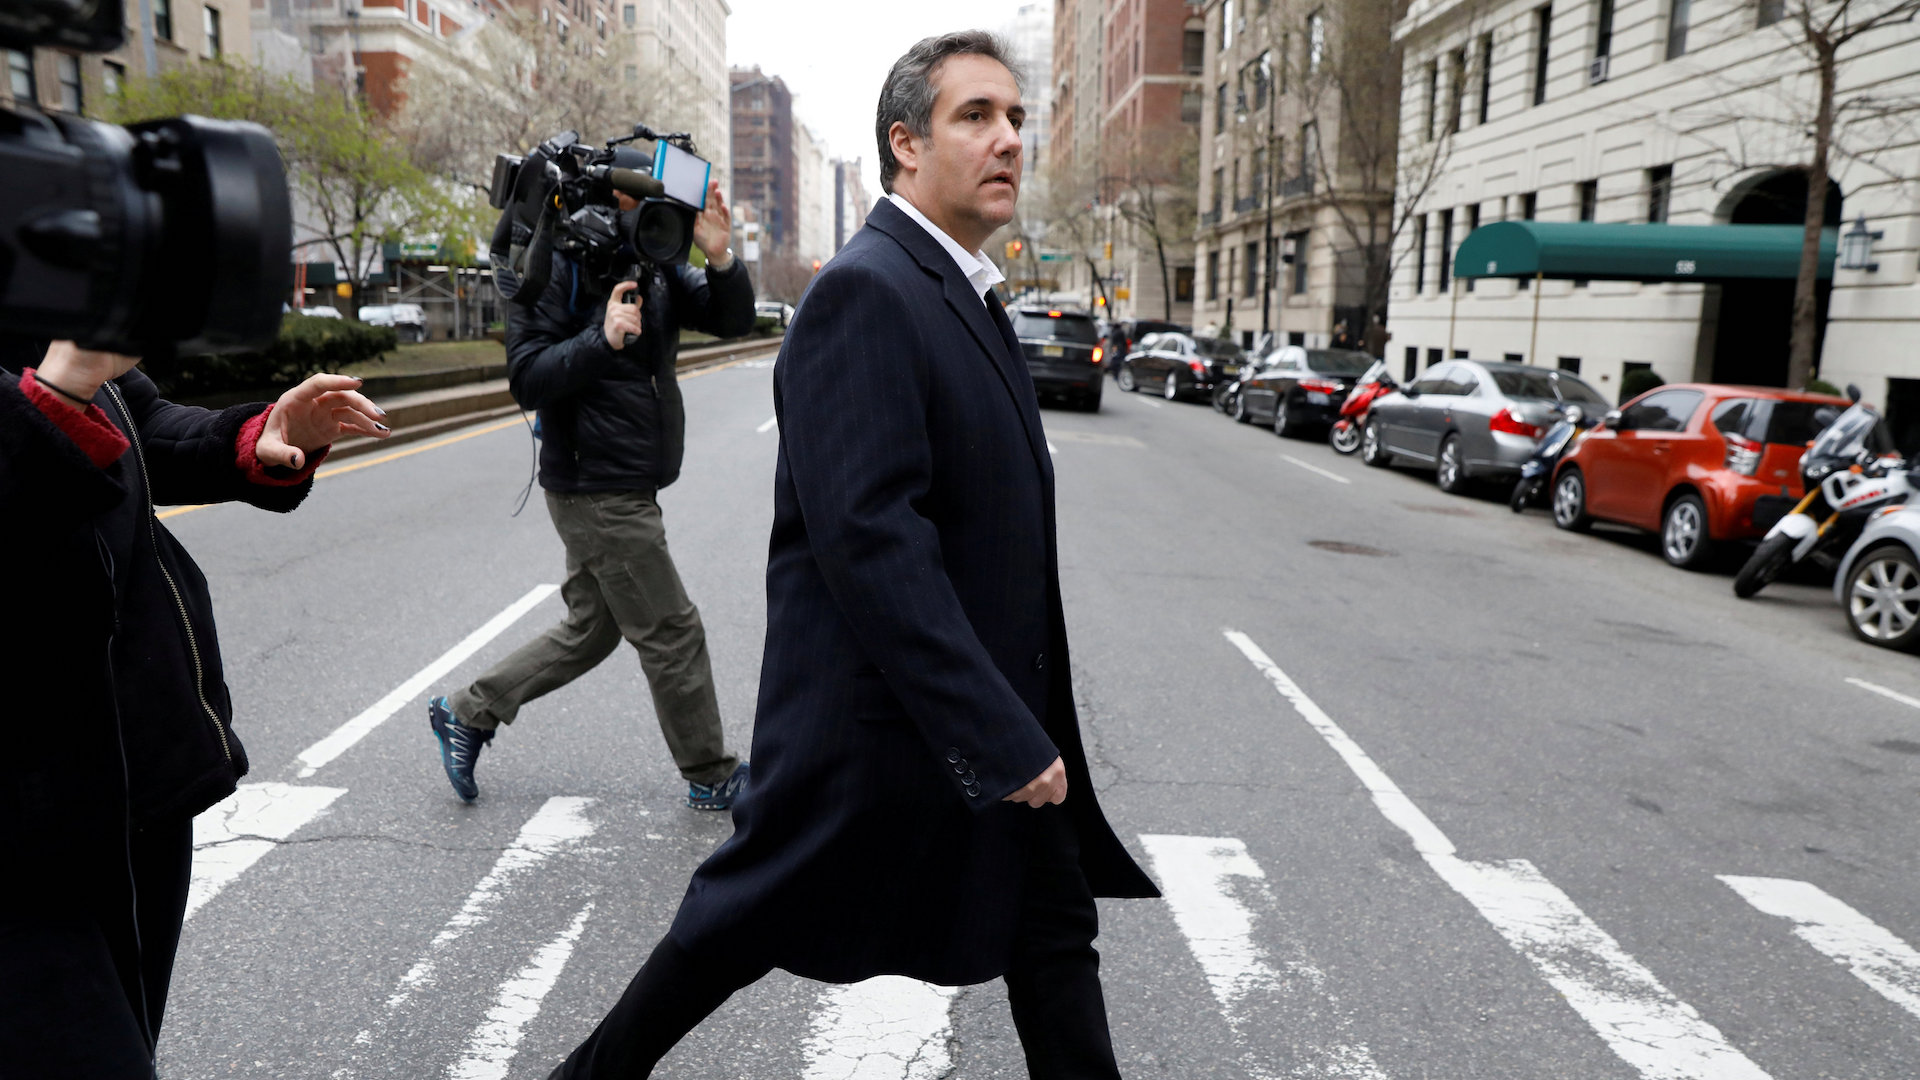 Attorney for Michael Cohen backs away from confidence that Cohen has information about Trump's knowledge on Russian efforts